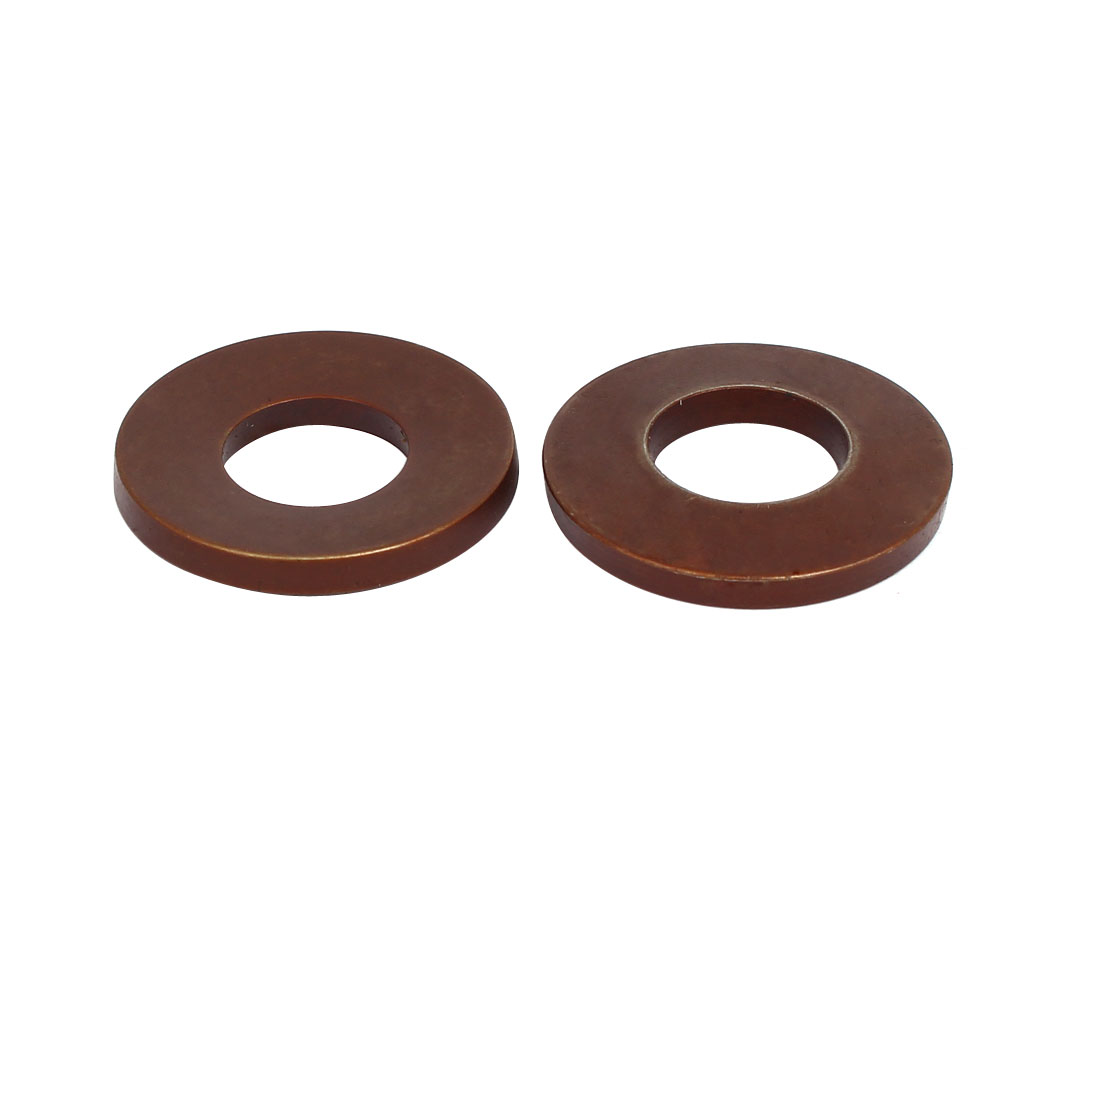 42mm Outer Dia 19mm Inner Dia 4.5mm Thickness Belleville Spring Washer 2pcs